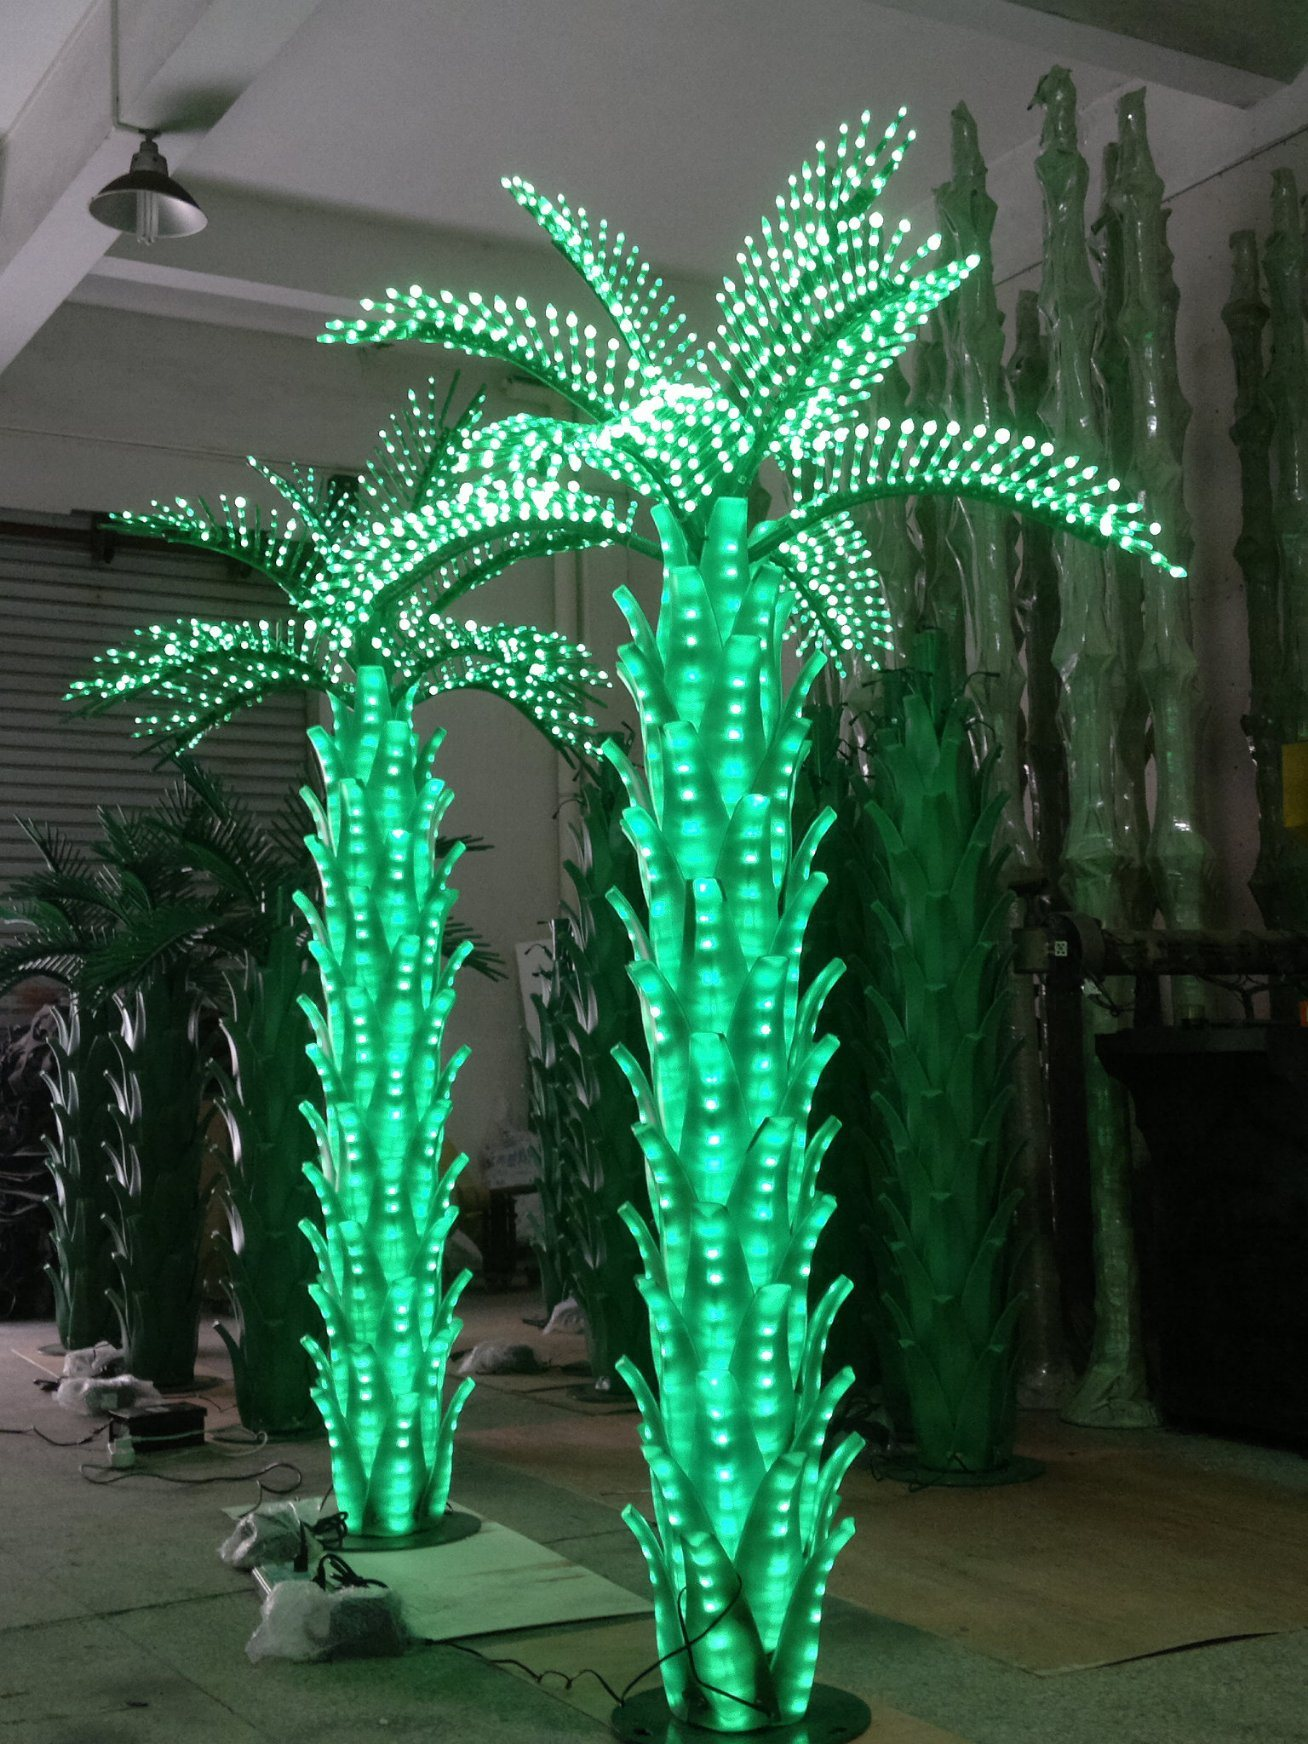 Yaye CE & RoHS Approval Waterproof IP65 Outdoor LED Coconut Tree Light & LED Coconut Tree